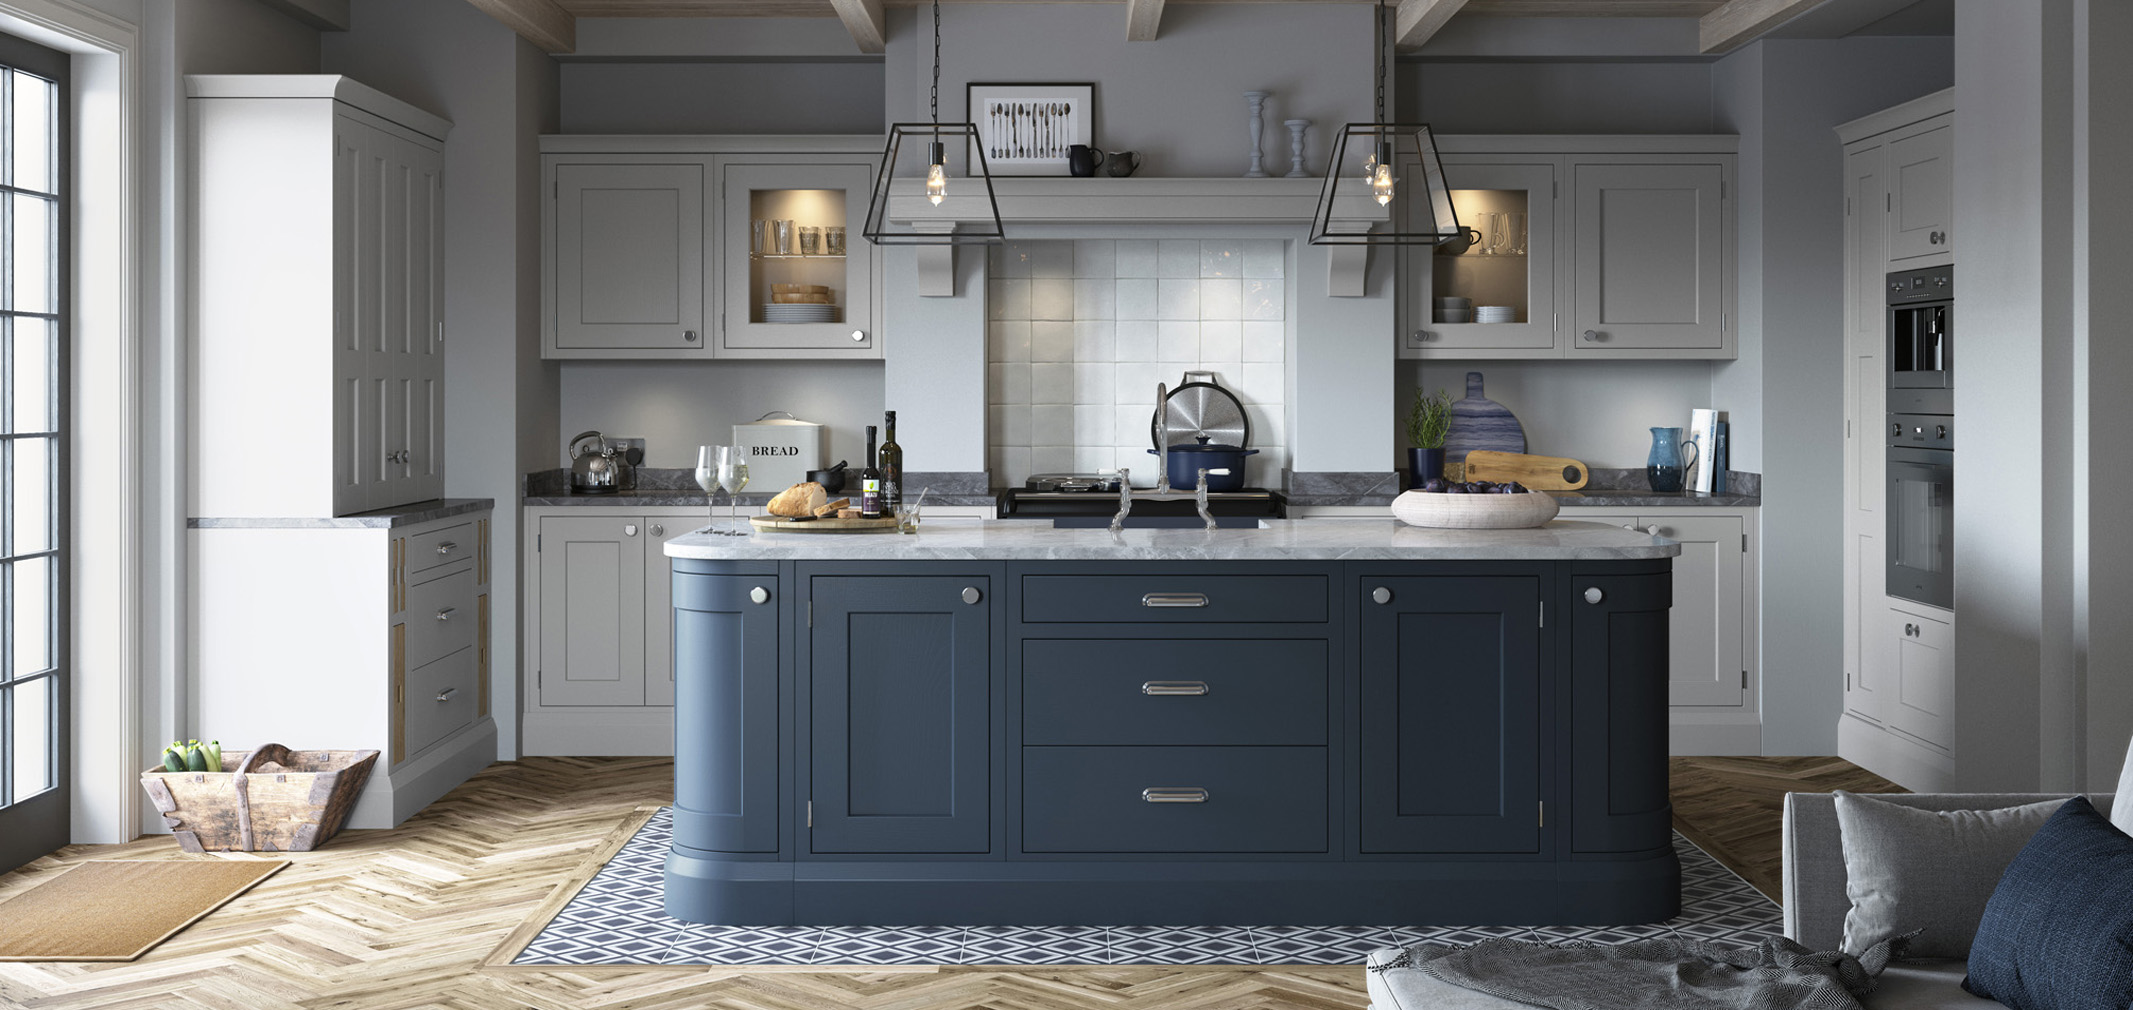 High End Kitchen Design Images Premium Kitchen Suppliers The Trade Supplier For High End Kitchens